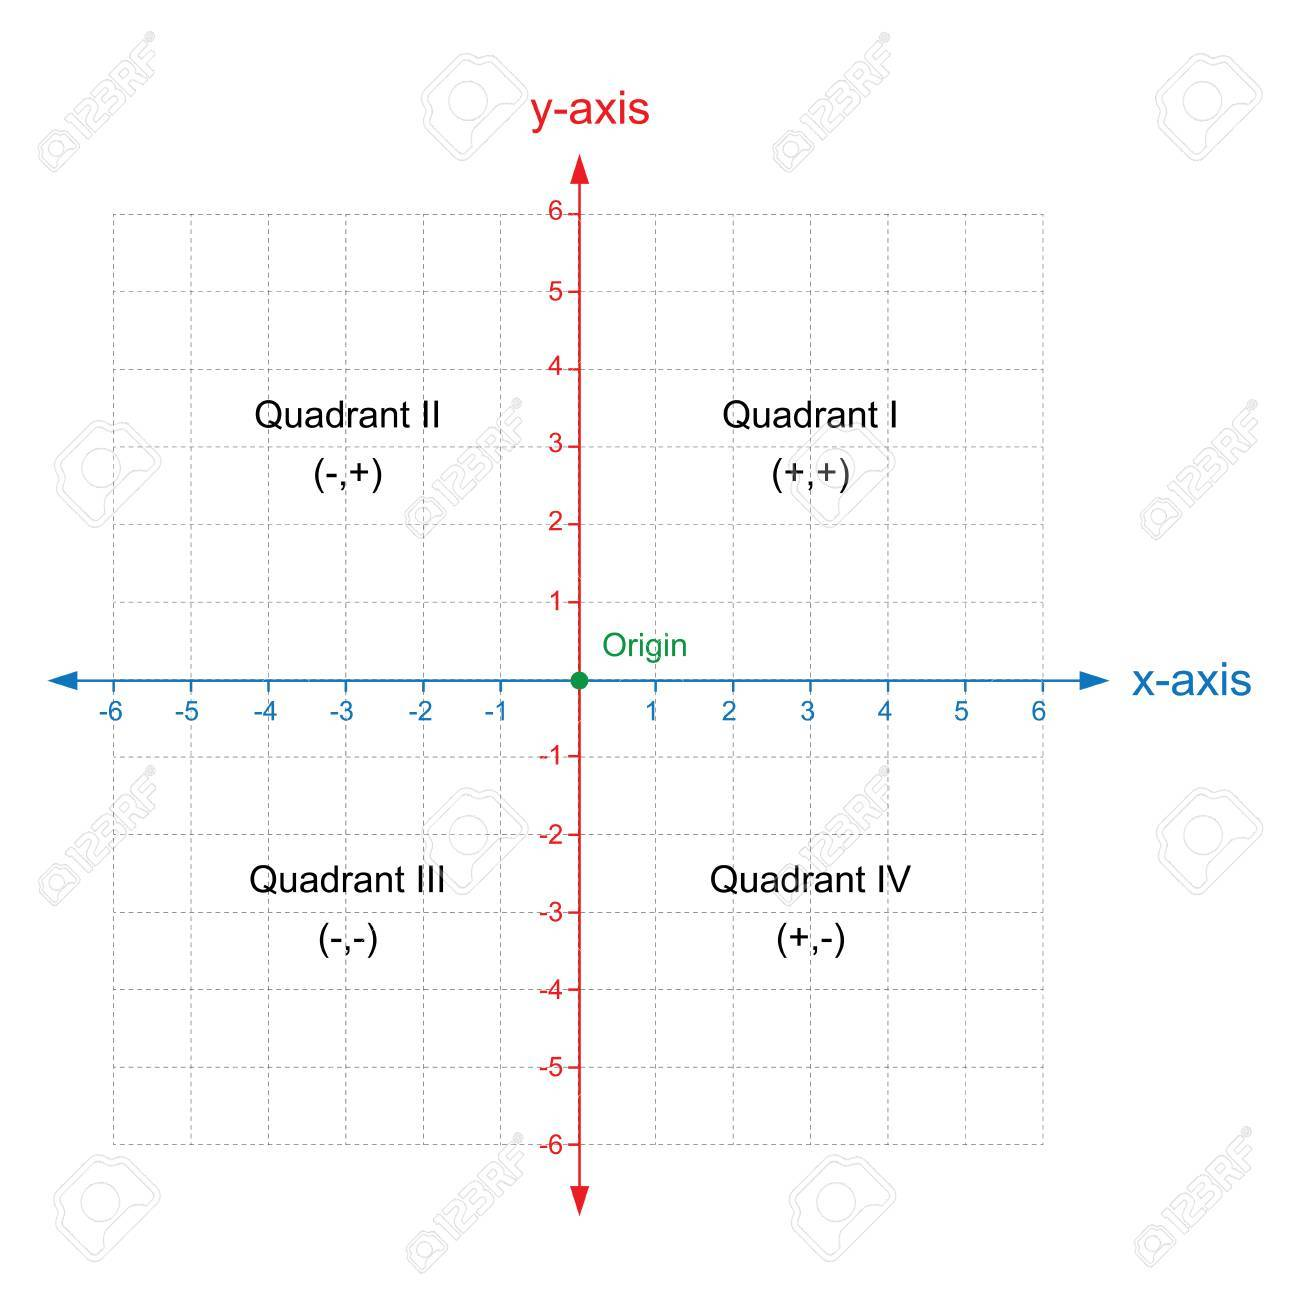 worksheet Coordinate Plane 1st Quadrant worksheet 1st quadrant grid wosenly minutes word template x and y axis cartesian coordinate plane with numbers dotted line stock vector free planehtml grid